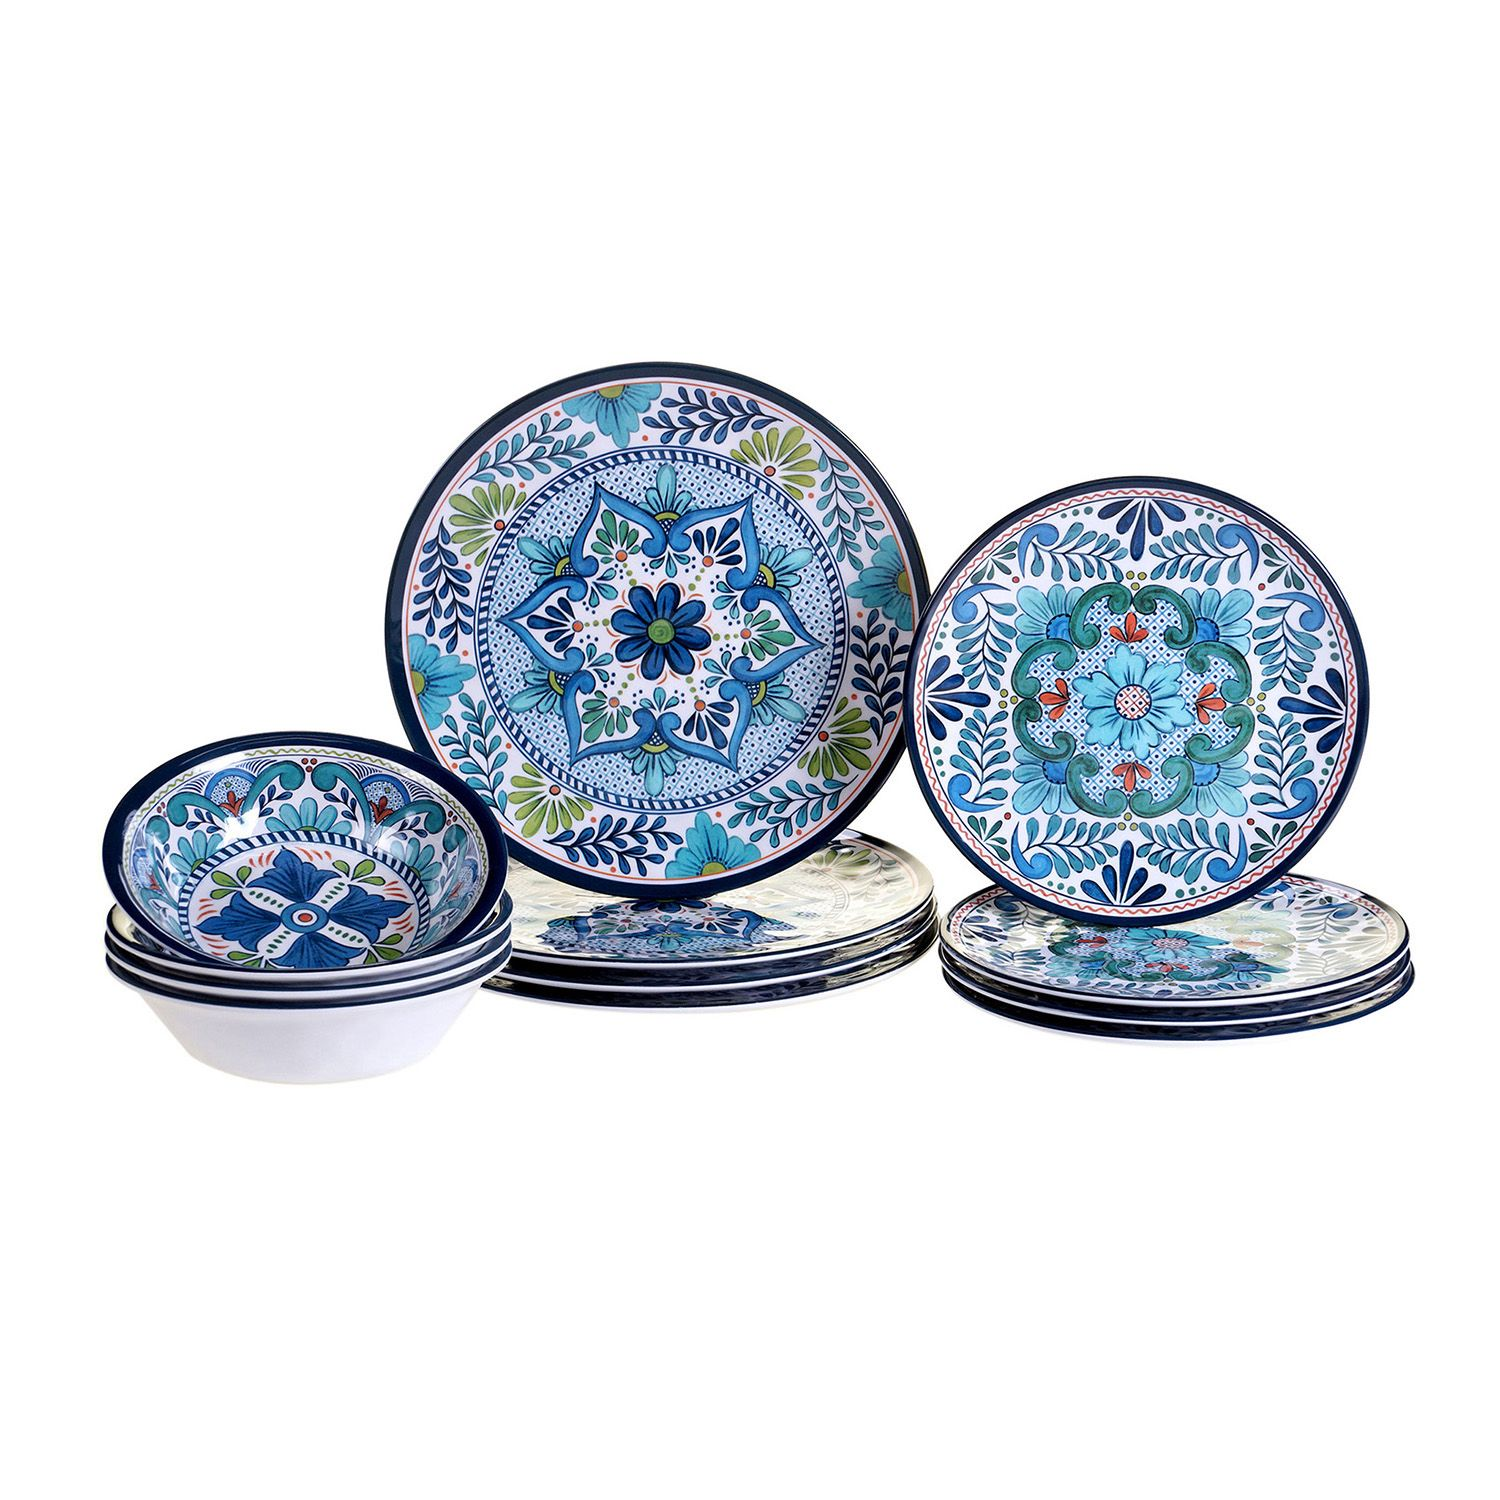 Certified International Talavera 12-pc. Dinnerware Set  sc 1 st  Kohlu0027s & Certified International | Kohlu0027s